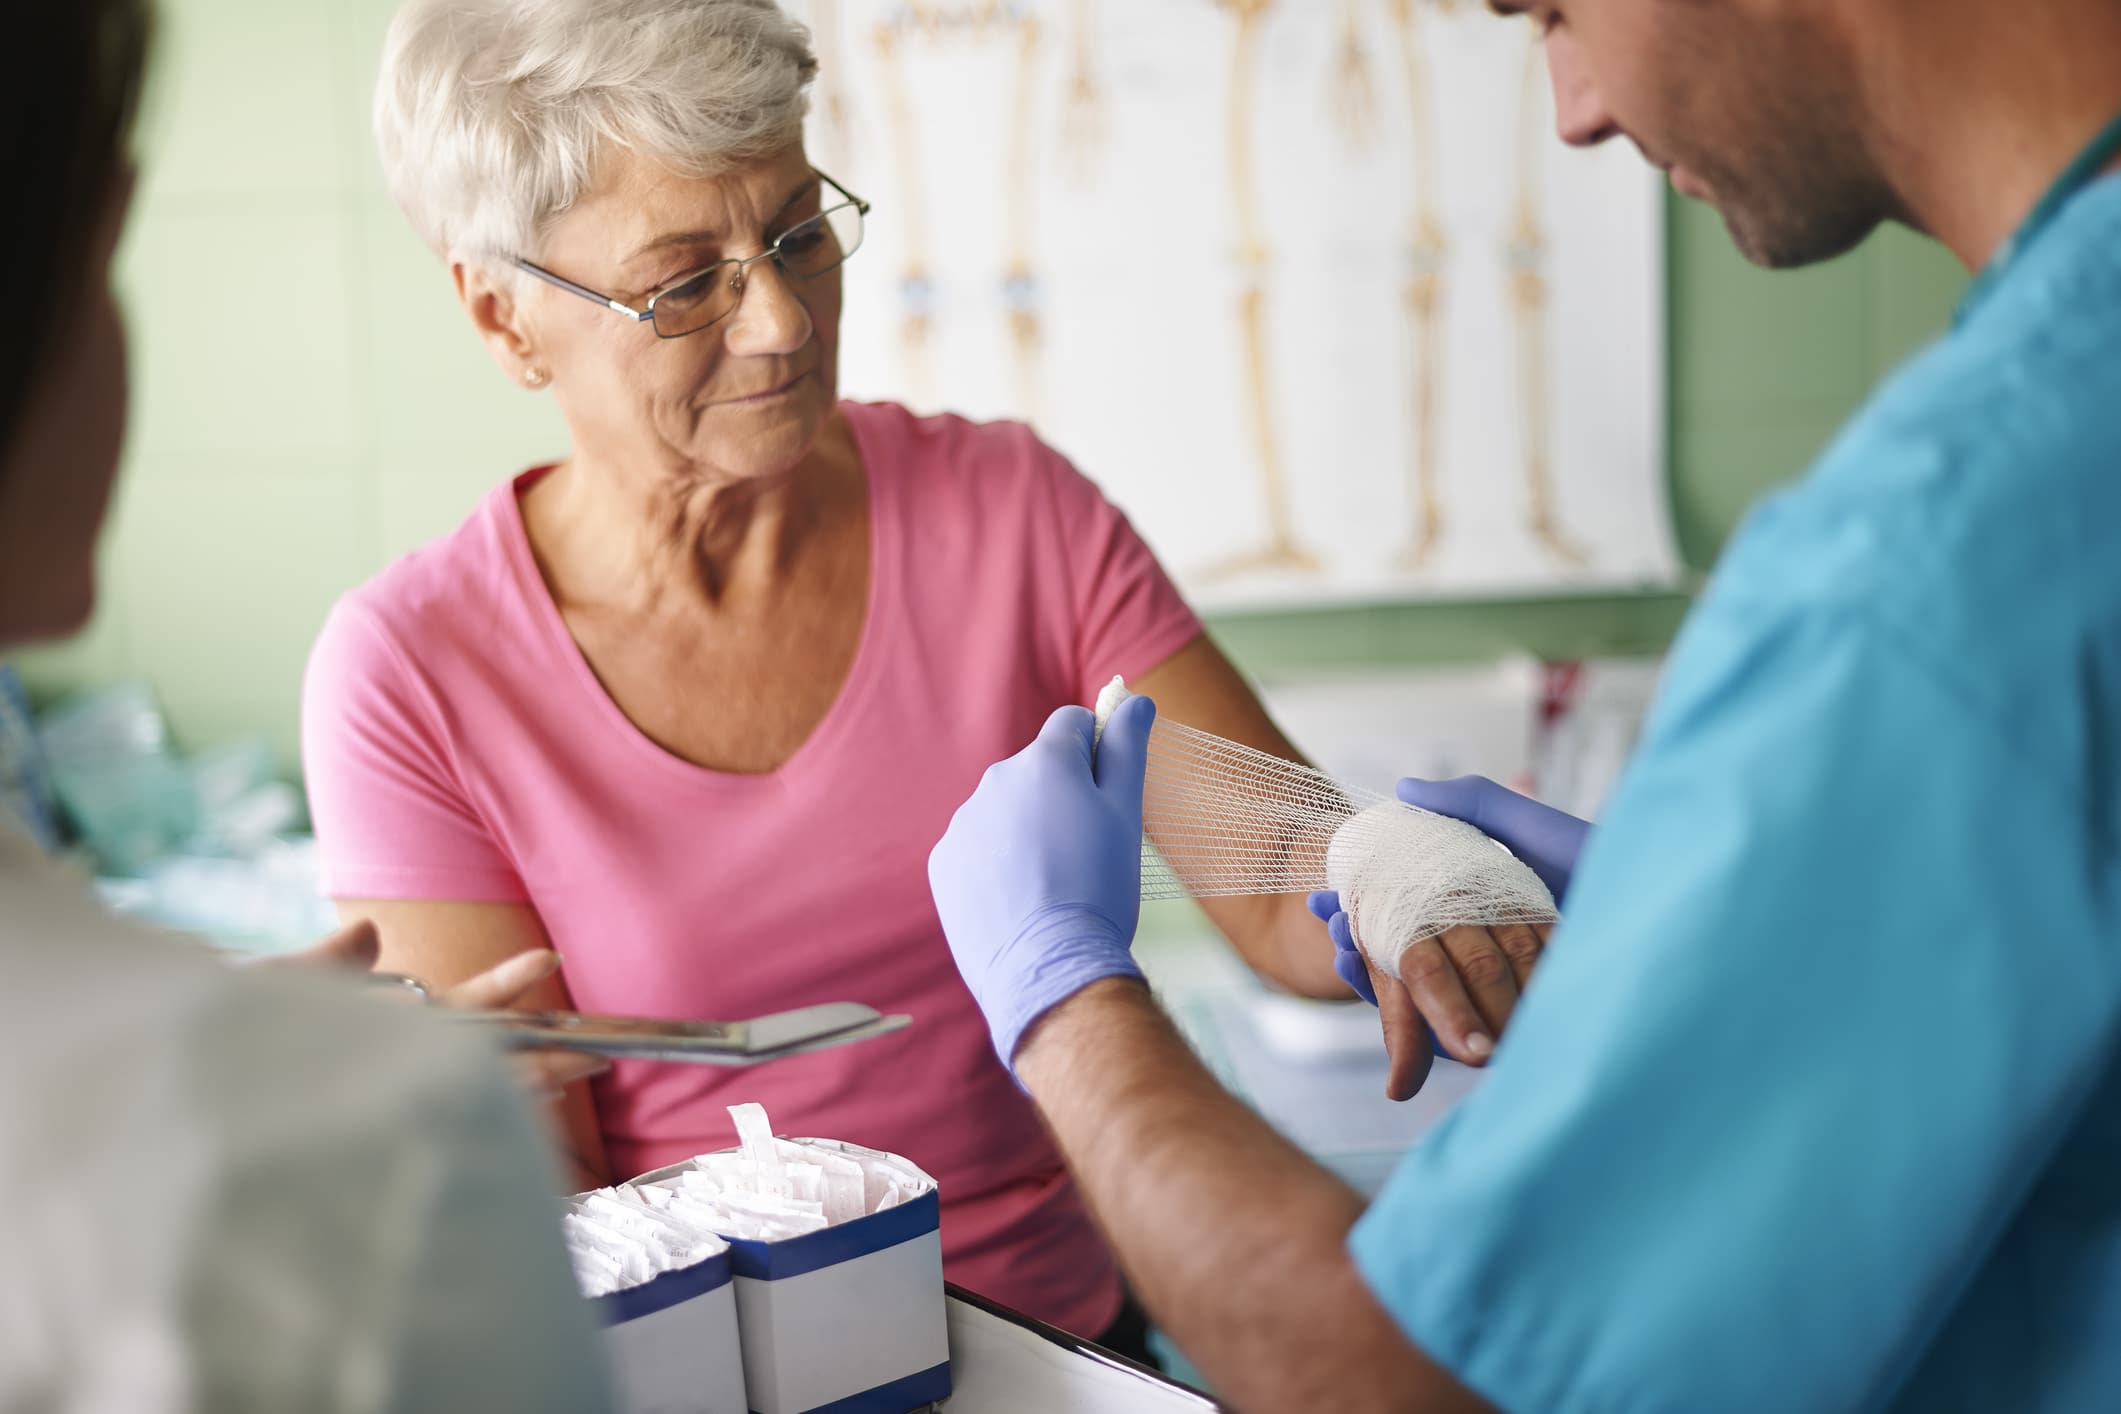 medical-assistant-helping-patient